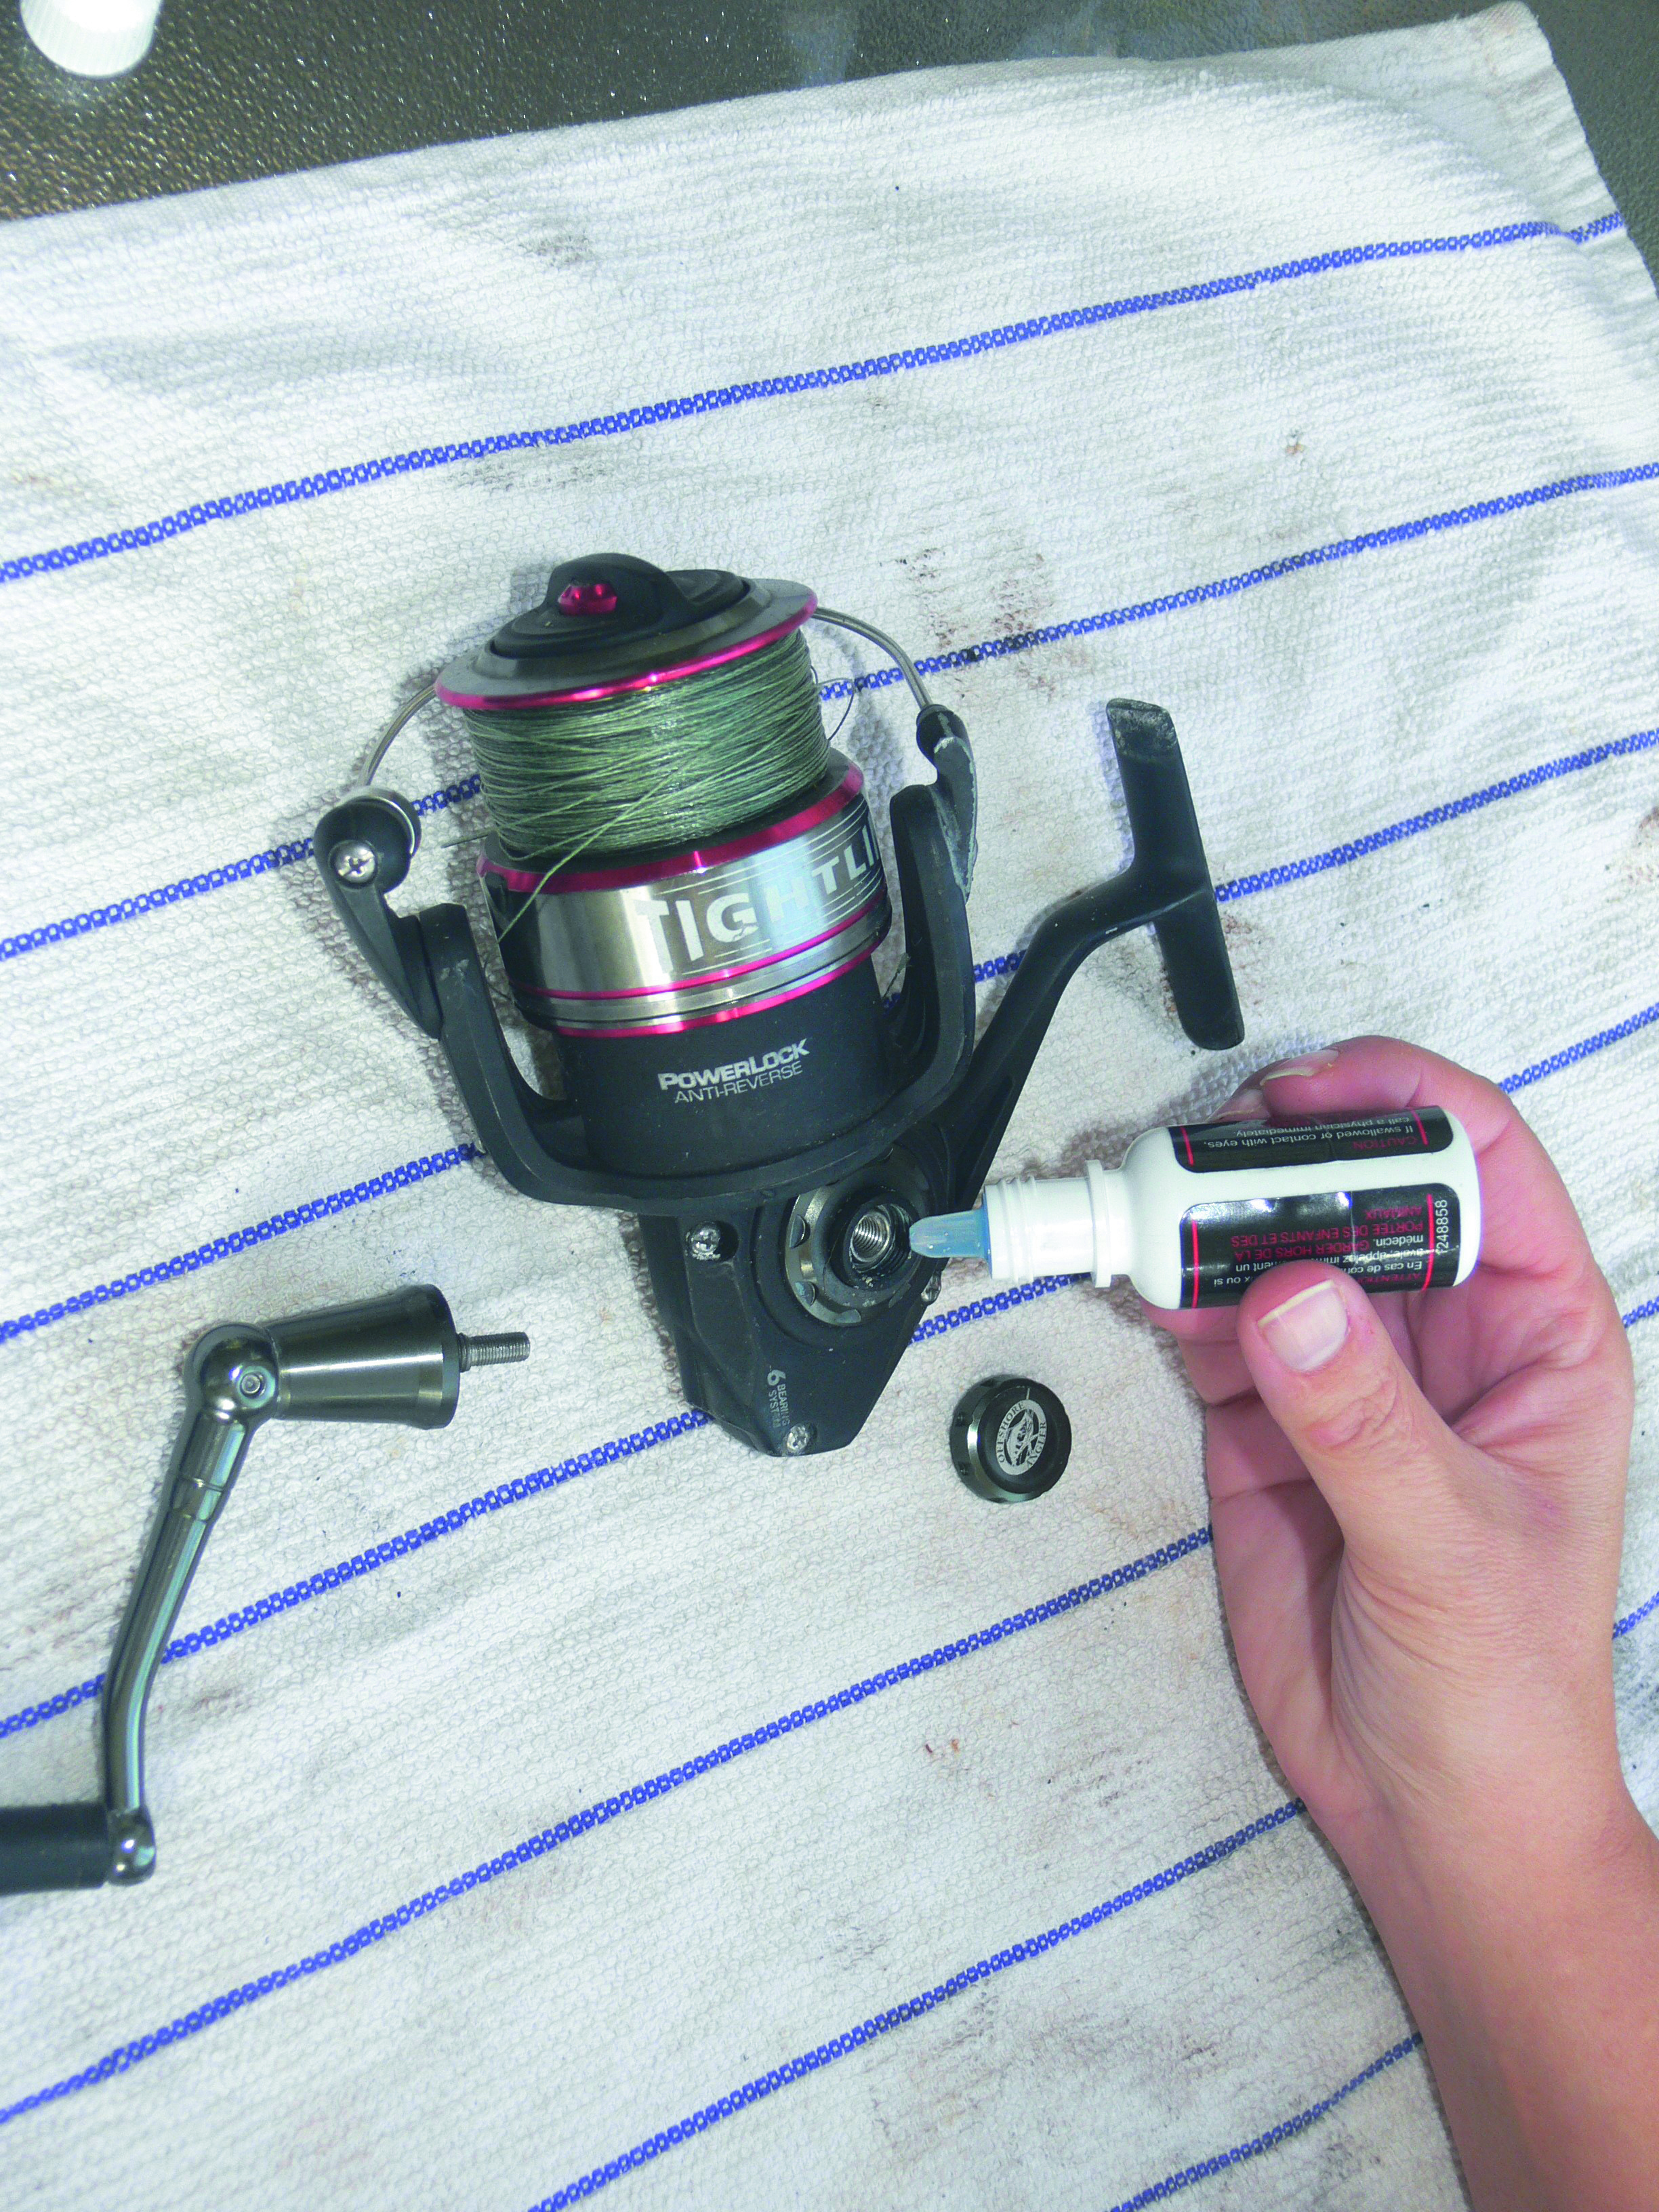 Step two to maintain your spinning reel